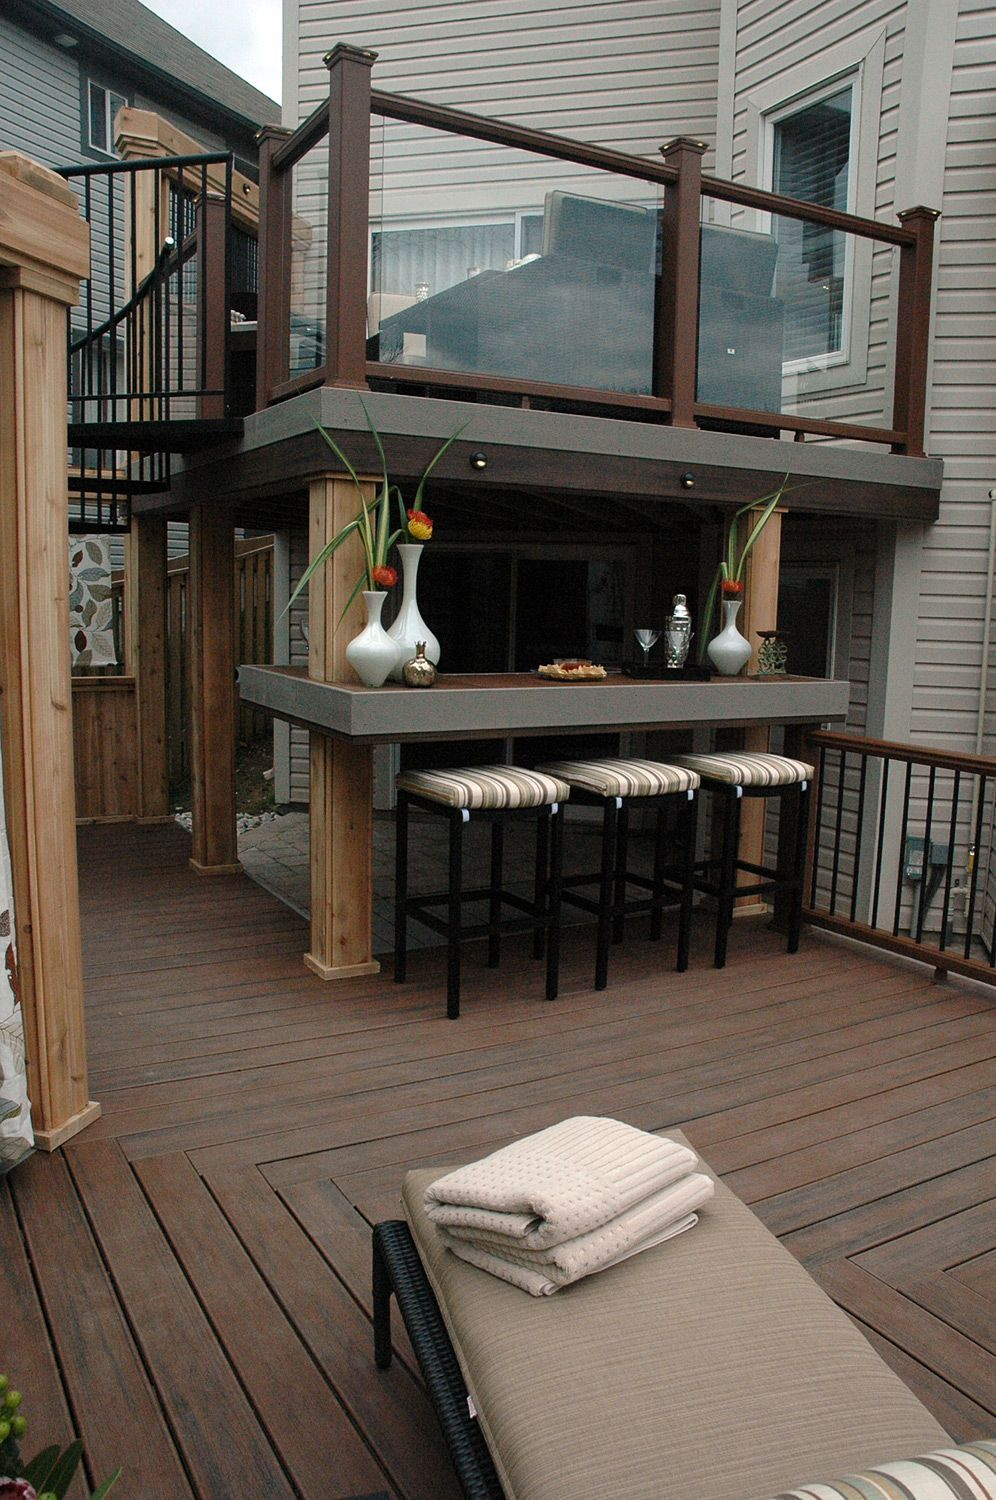 This Cantilevered Bar Is Conveniently Located Close To The Hot Tub And Sheltered By The Upper Deck Above Part O Deck Design Patio Deck Designs Backyard Patio